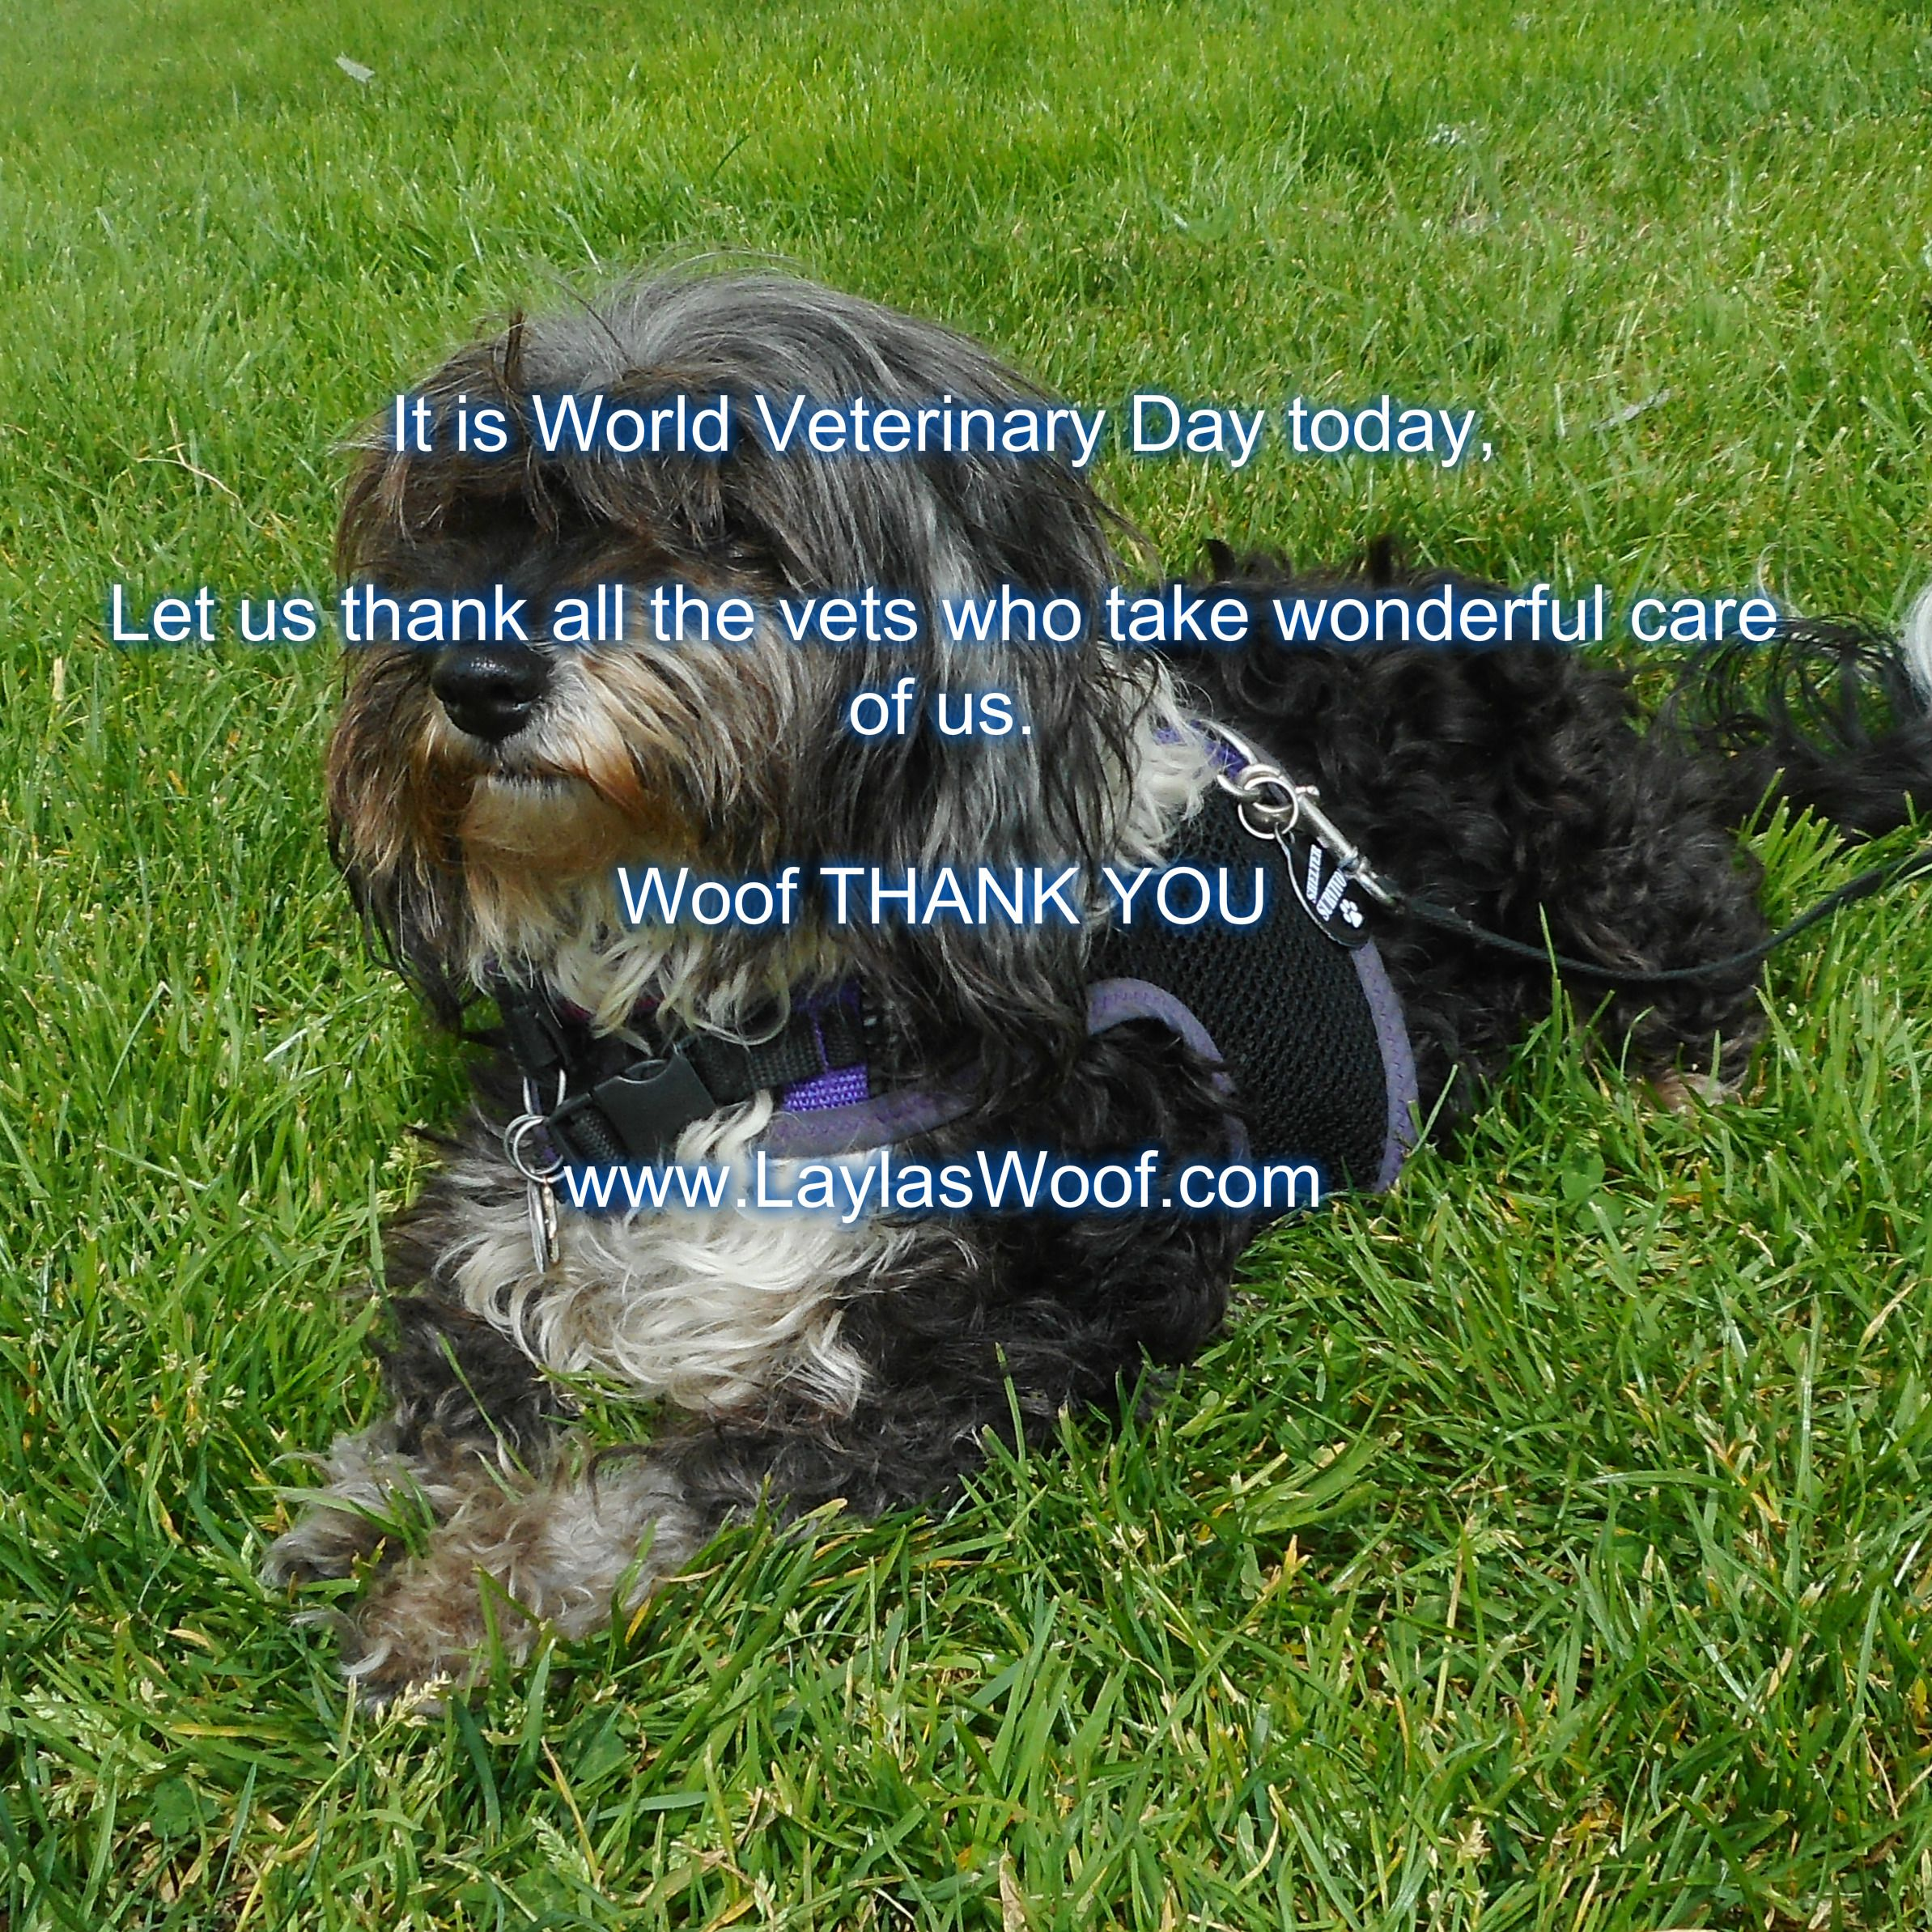 World Veterinary Day Veterinary Day Dogs Rescue Dogs